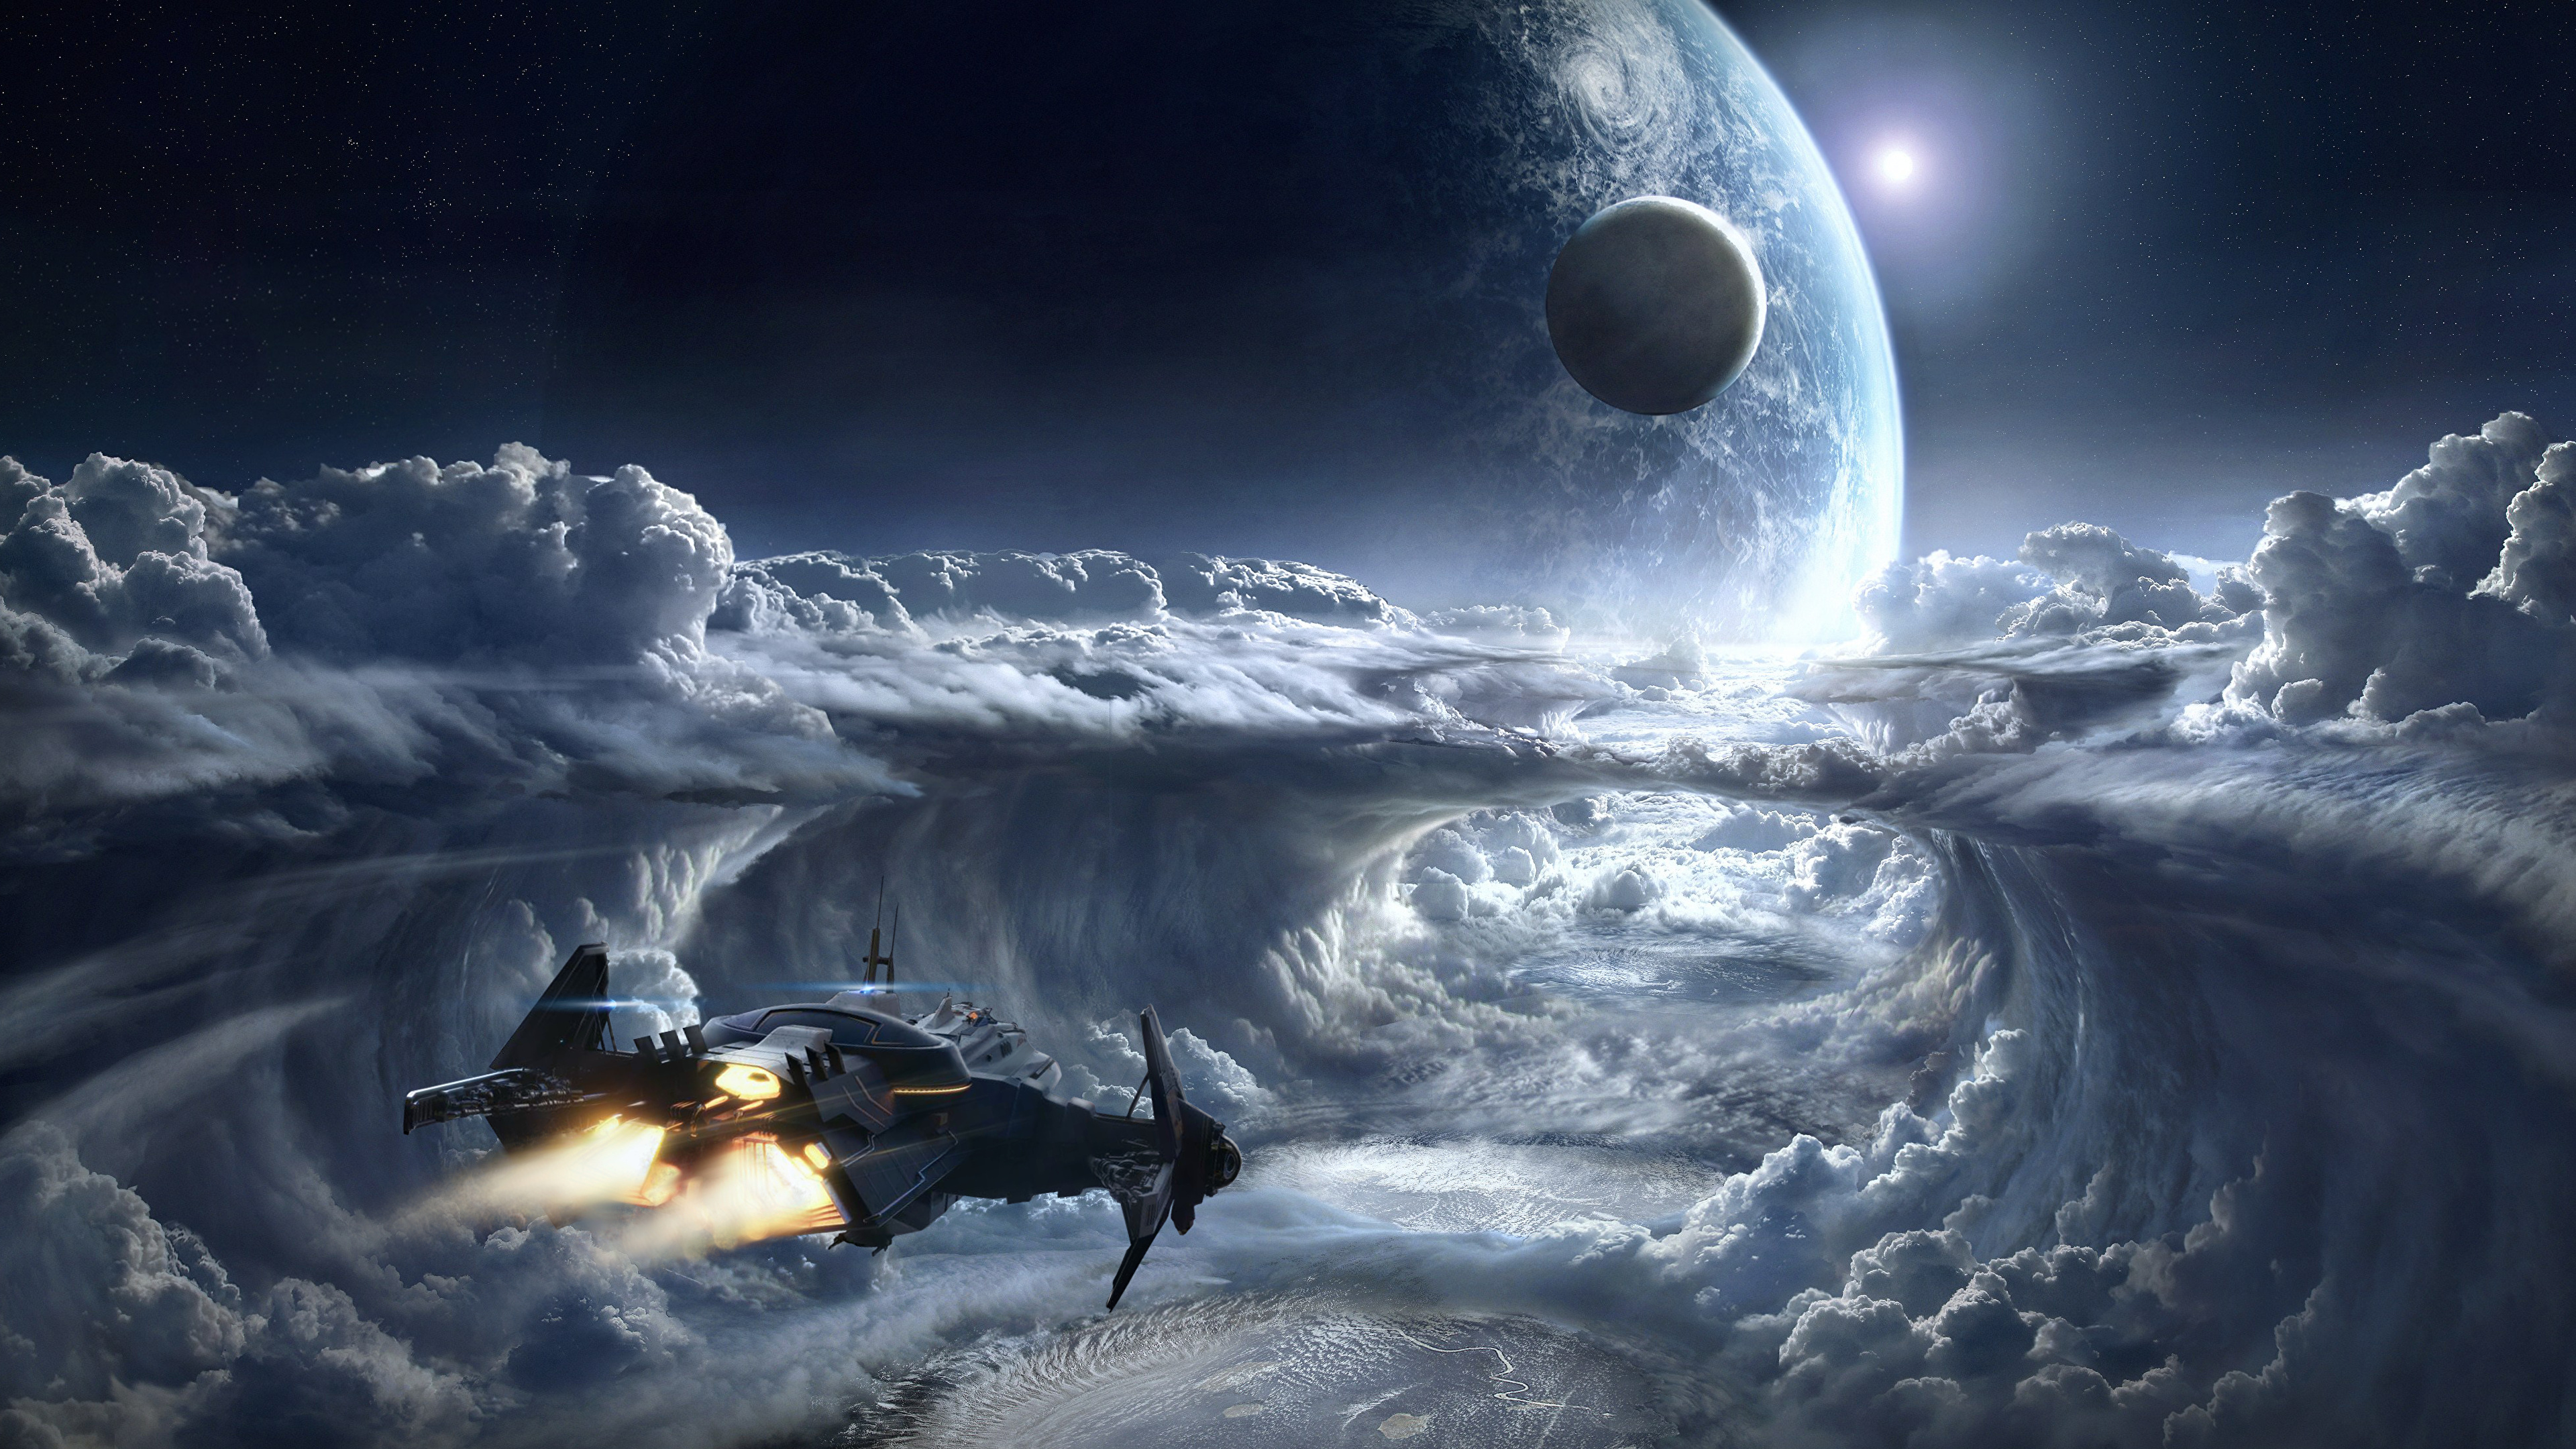 wallpaper star citizen planets space fantasy games ships 3840x2160